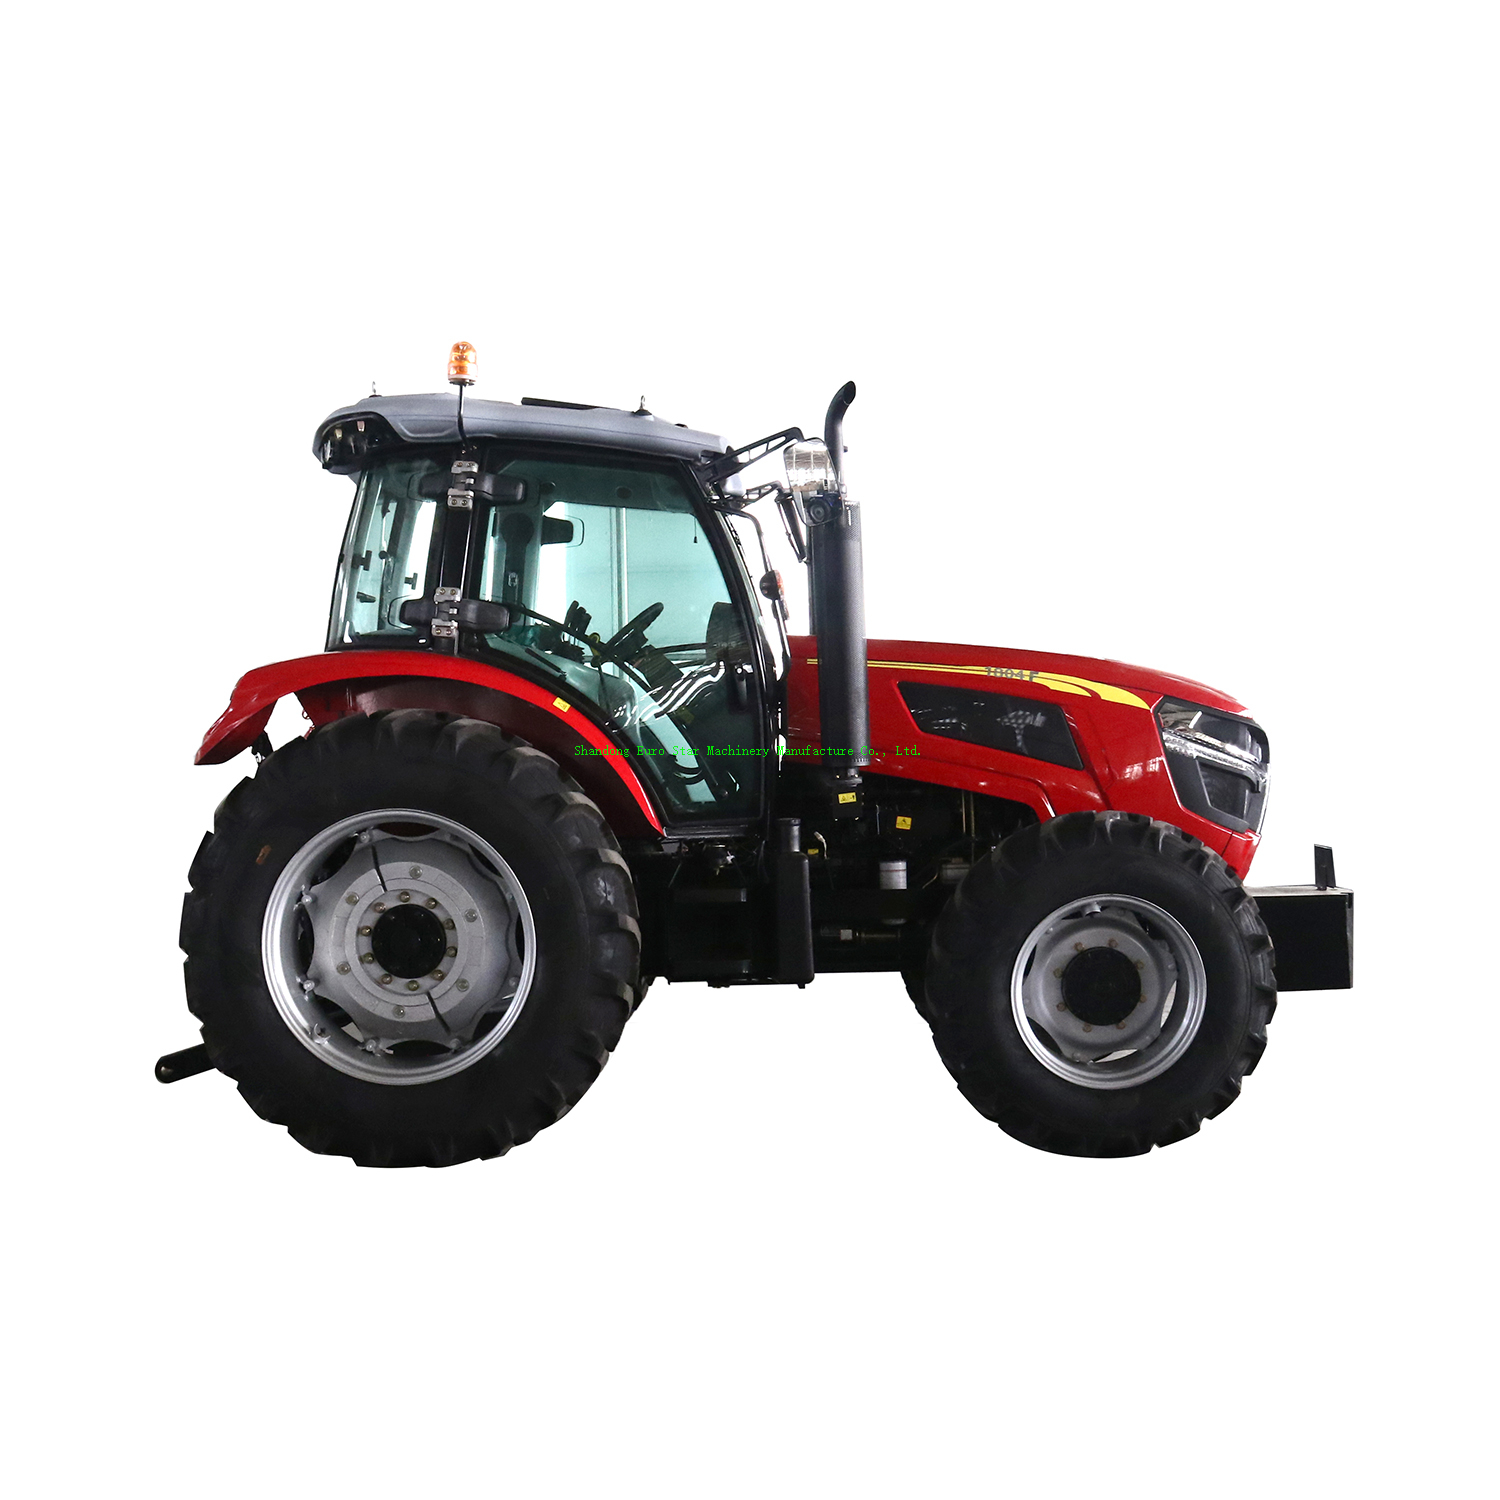 TF 100-165HP Tractor